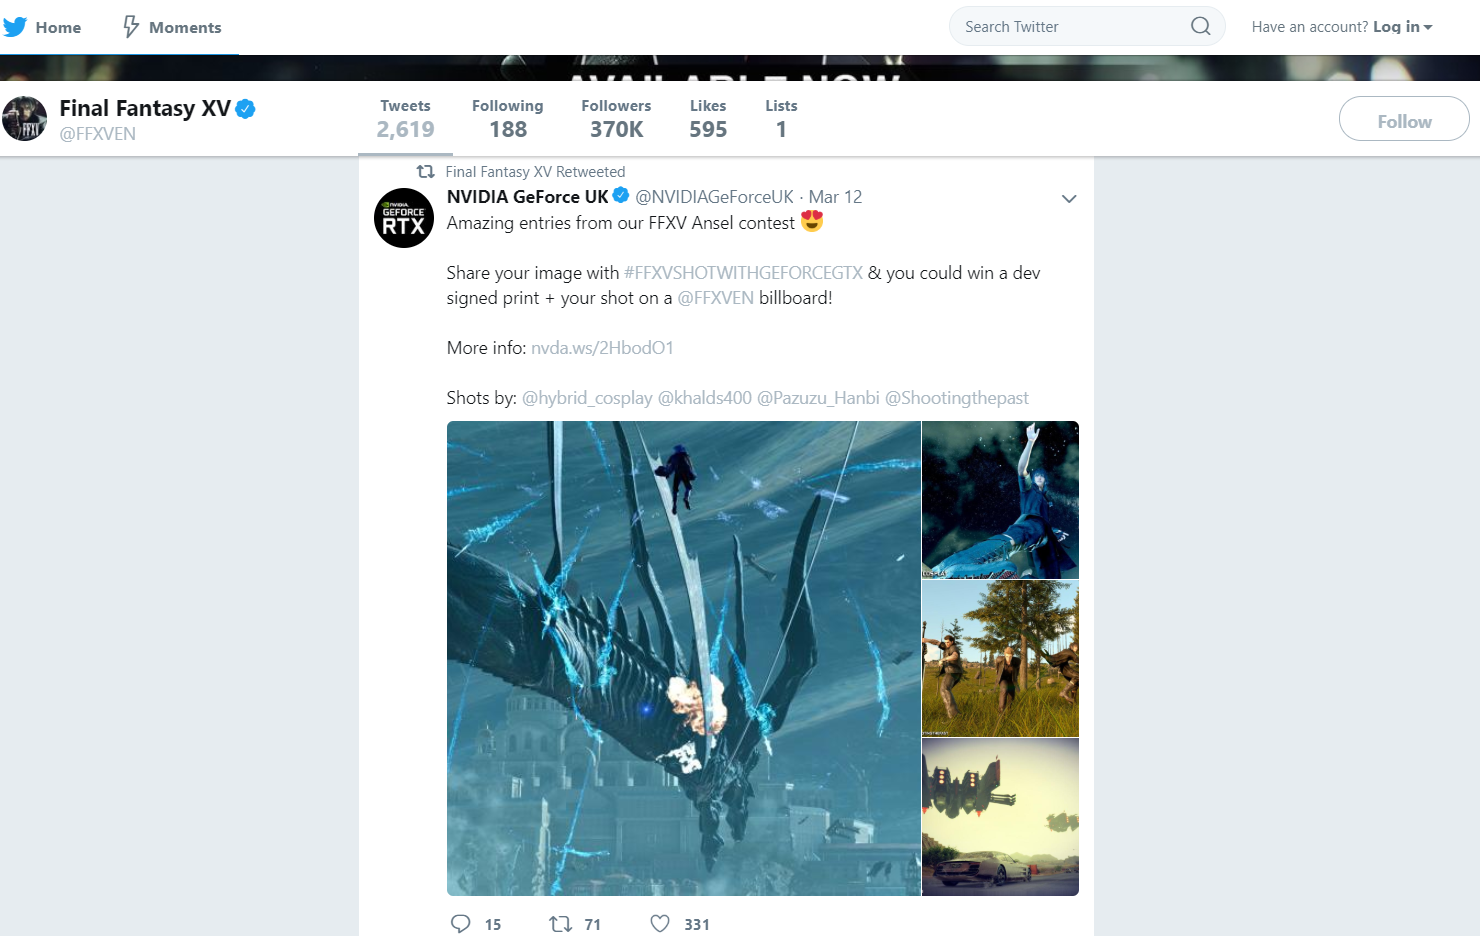 An official tweet regarding the FFXV Snapshot Contest